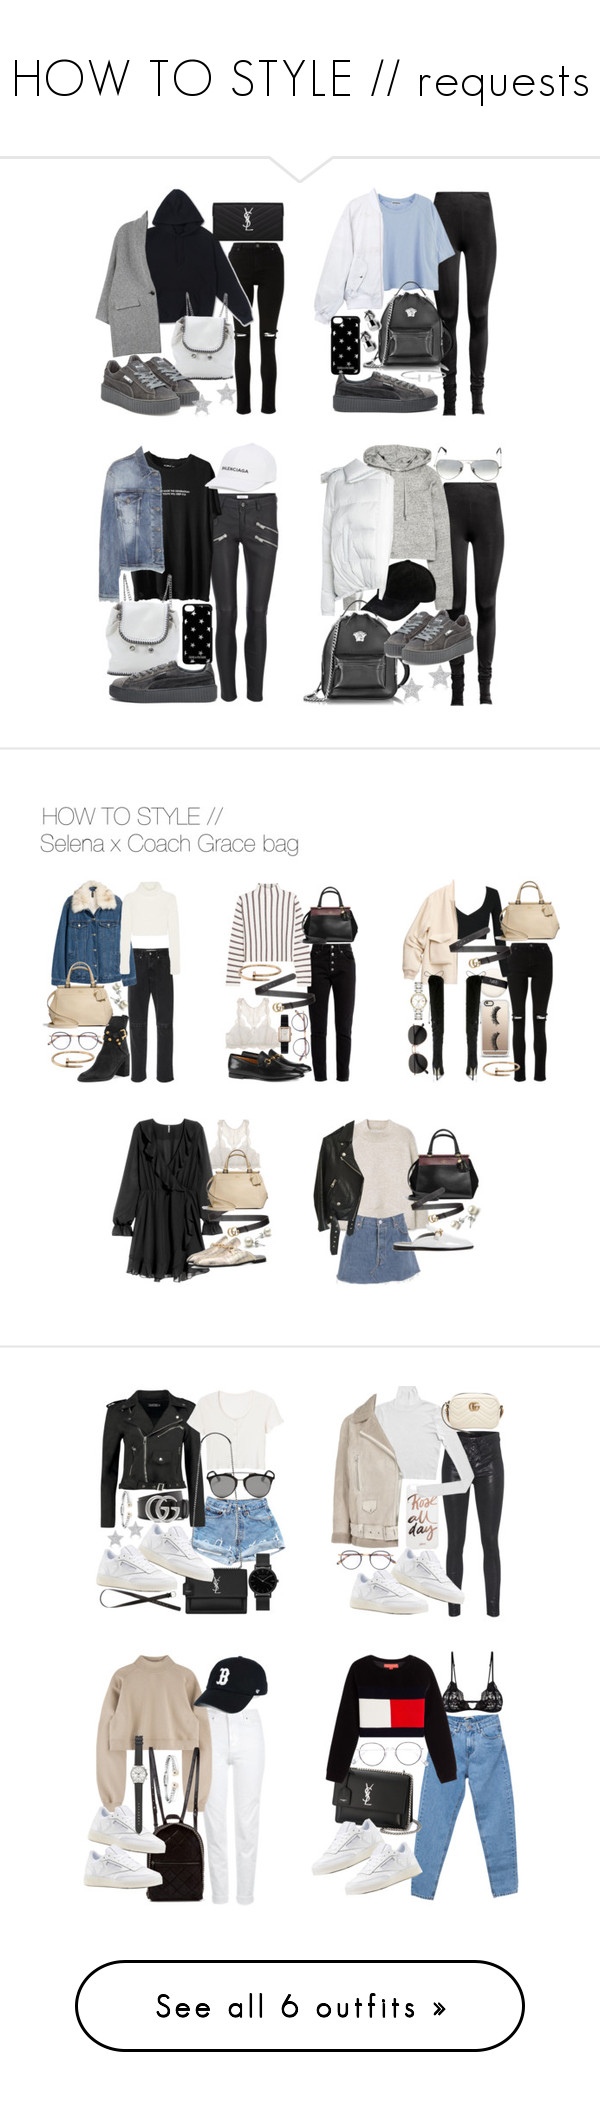 """HOW TO STYLE // requests"" by florencia95 ❤ liked on Polyvore featuring Isabel Marant, STELLA McCARTNEY, Puma, Yves Saint Laurent, Diamond Star, Zadig & Voltaire, Versace, Sacai, Anine Bing and Ray-Ban"